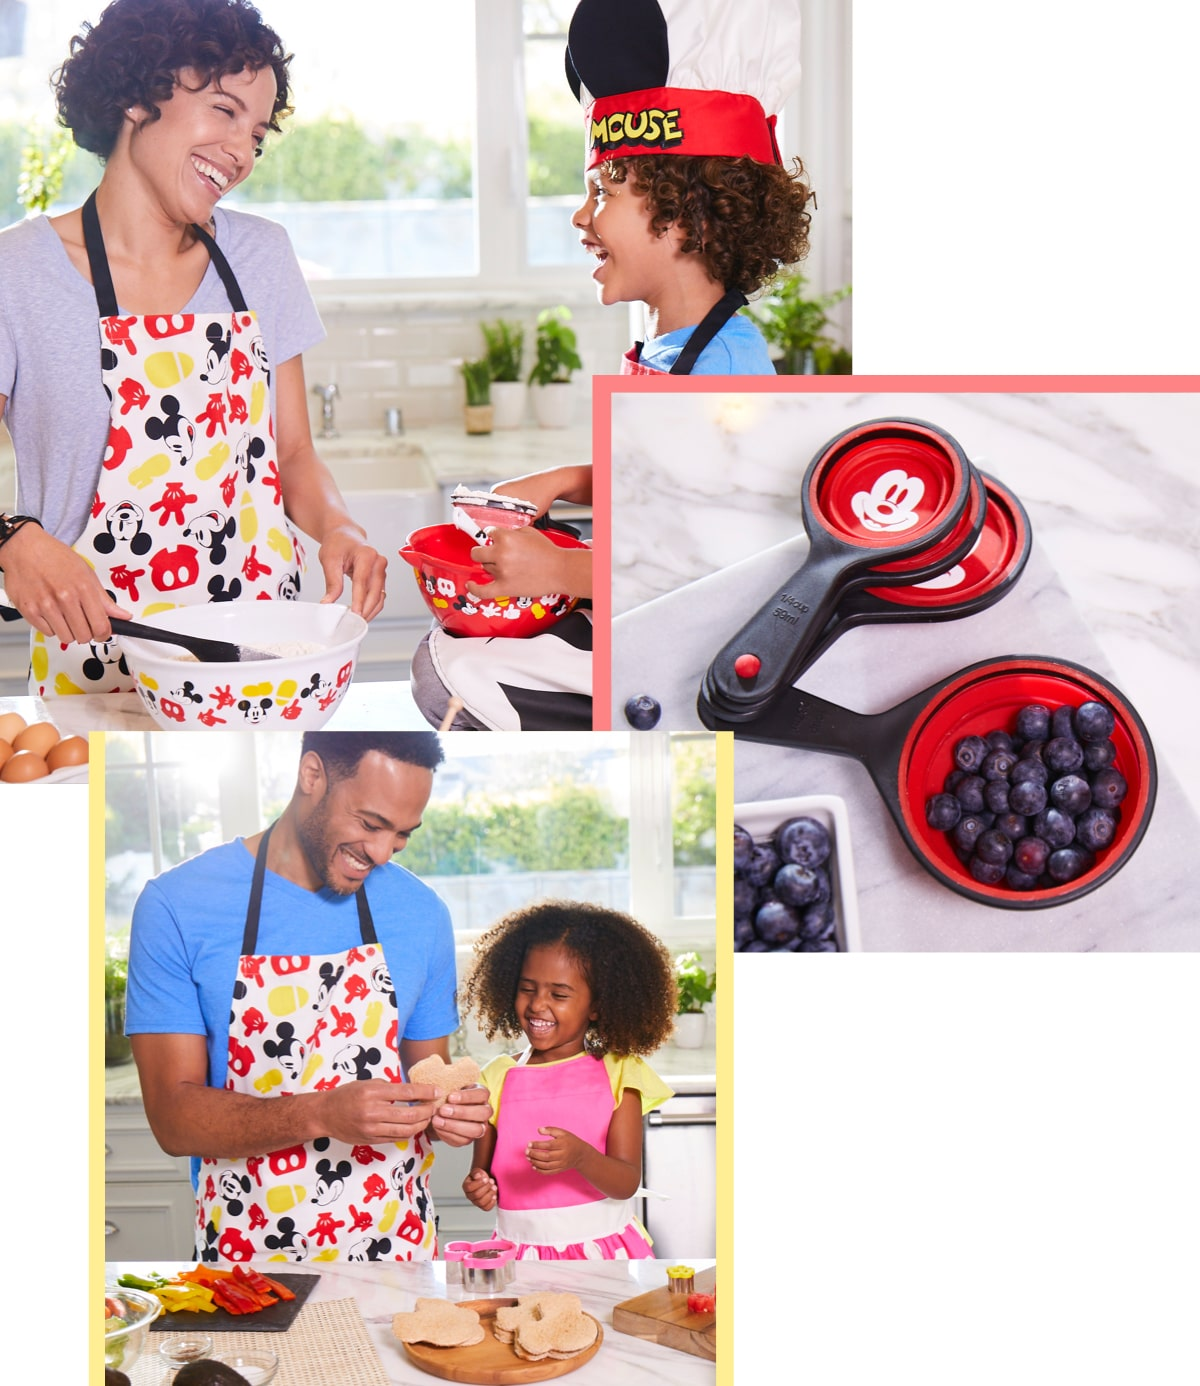 Family in the kitchen cooking with Disney themed cookware